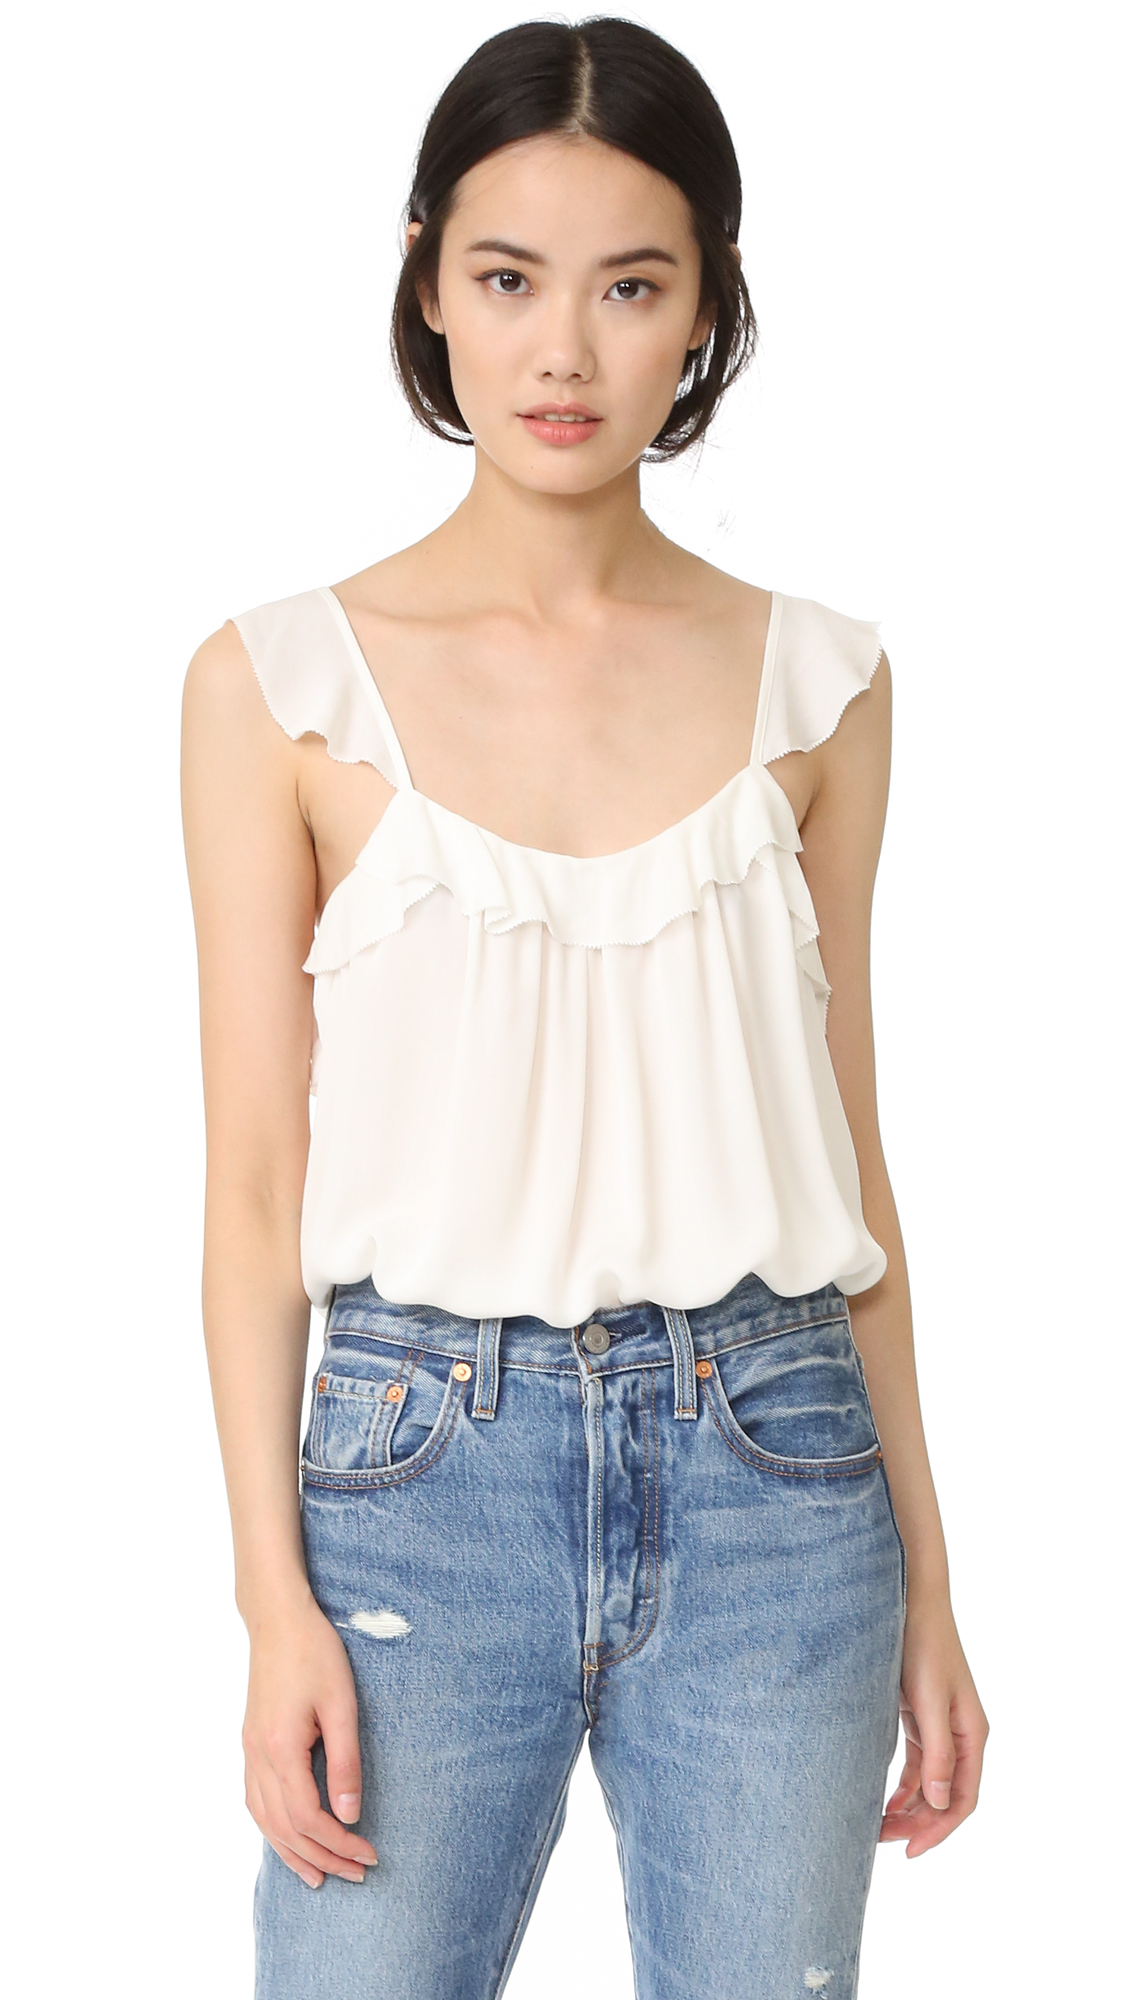 Joie Petal Top - Porcelain at Shopbop